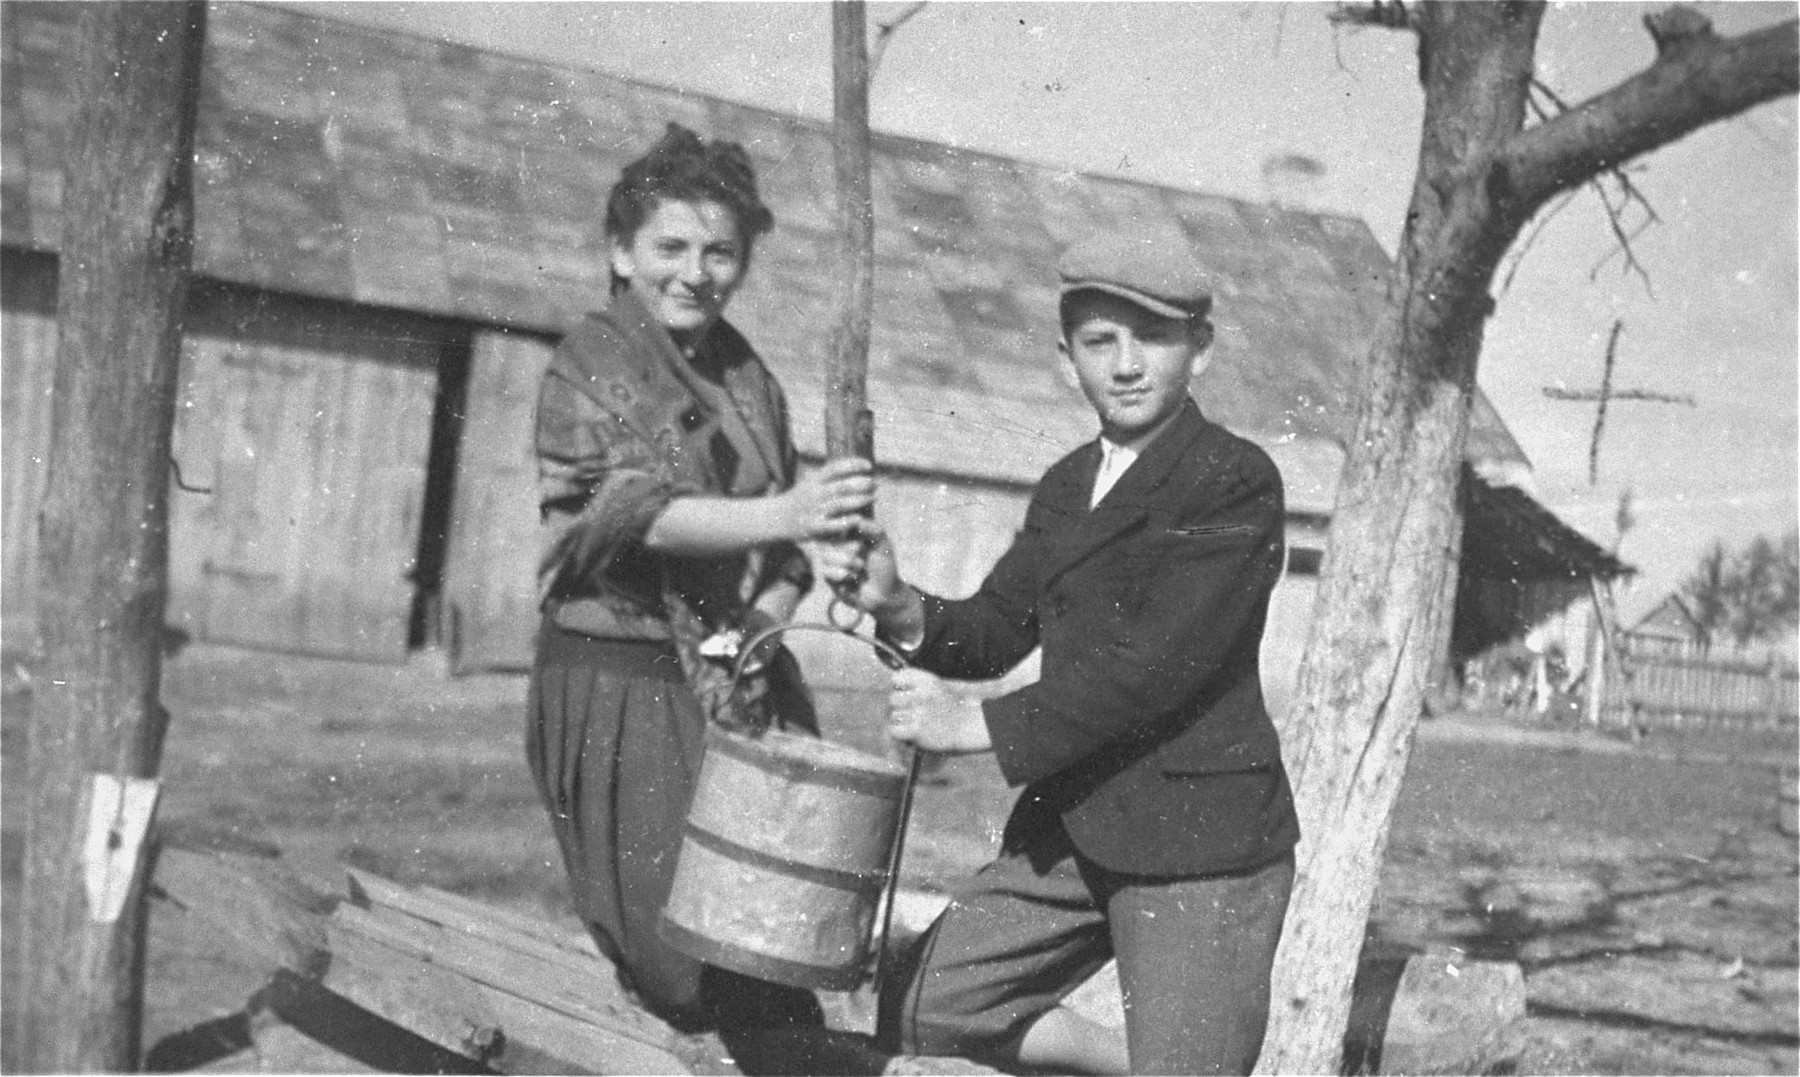 Two Jewish siblings draw water from a well in the Kolbuszowa ghetto.  Pictured are Manius and Niunia Notowicz.